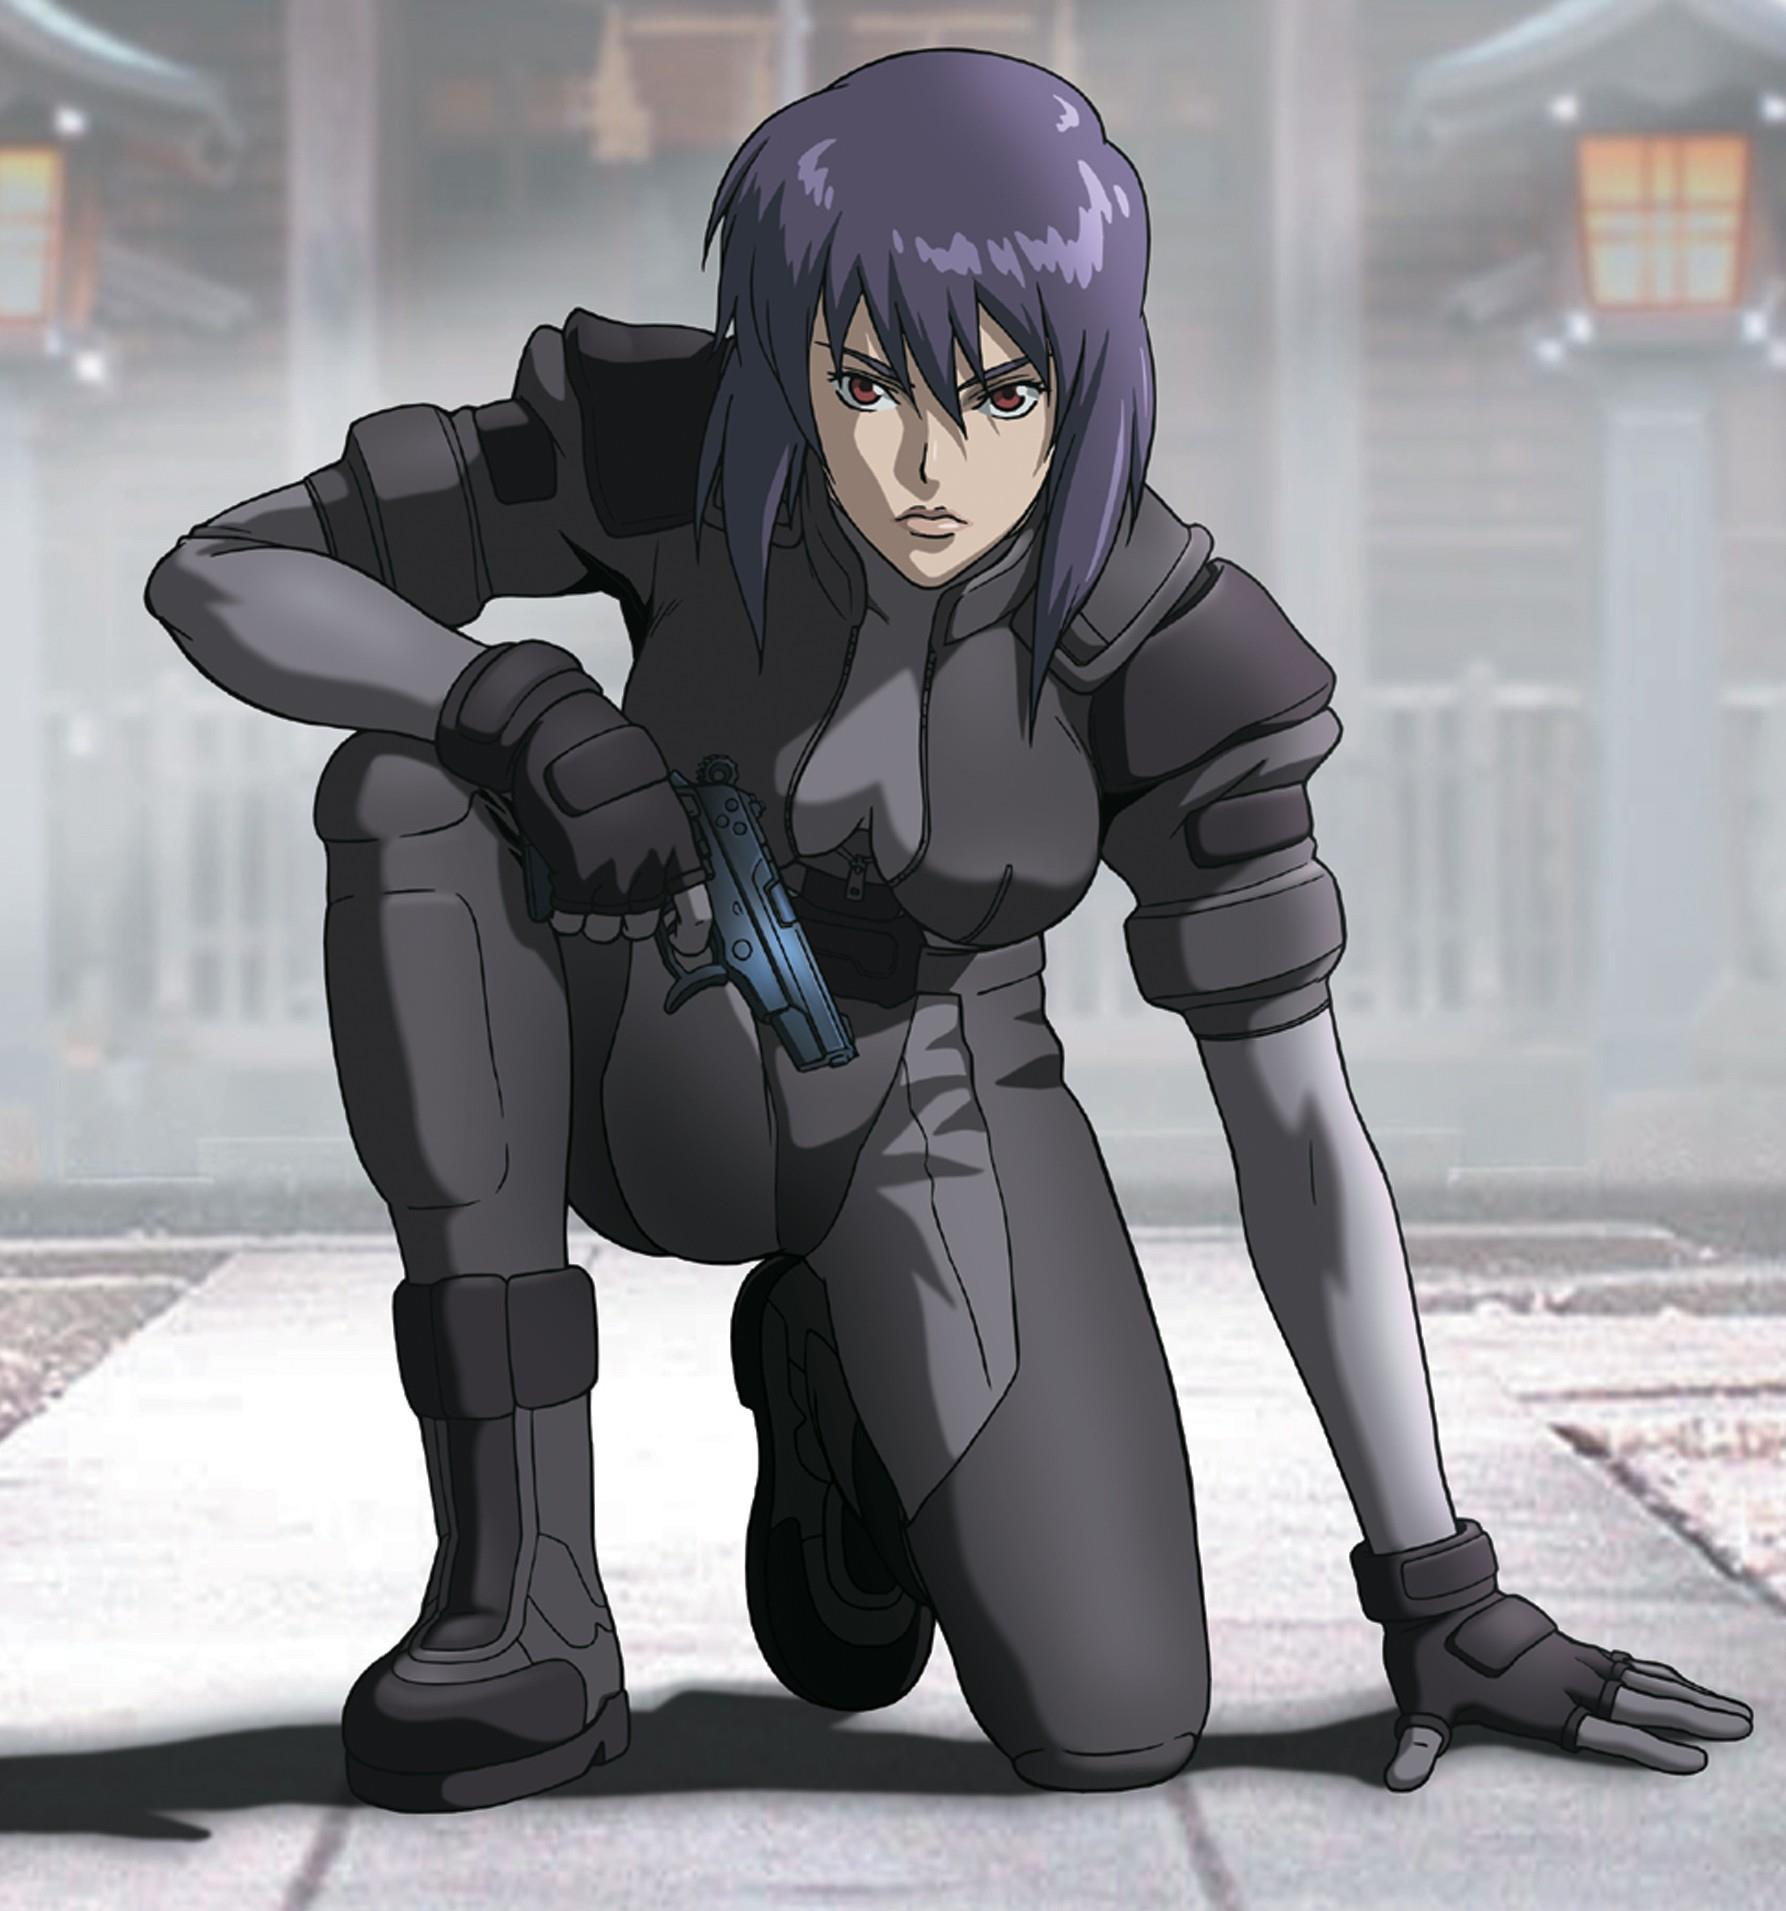 Motoko Kusanagi nell'anime di Ghost in the Shell